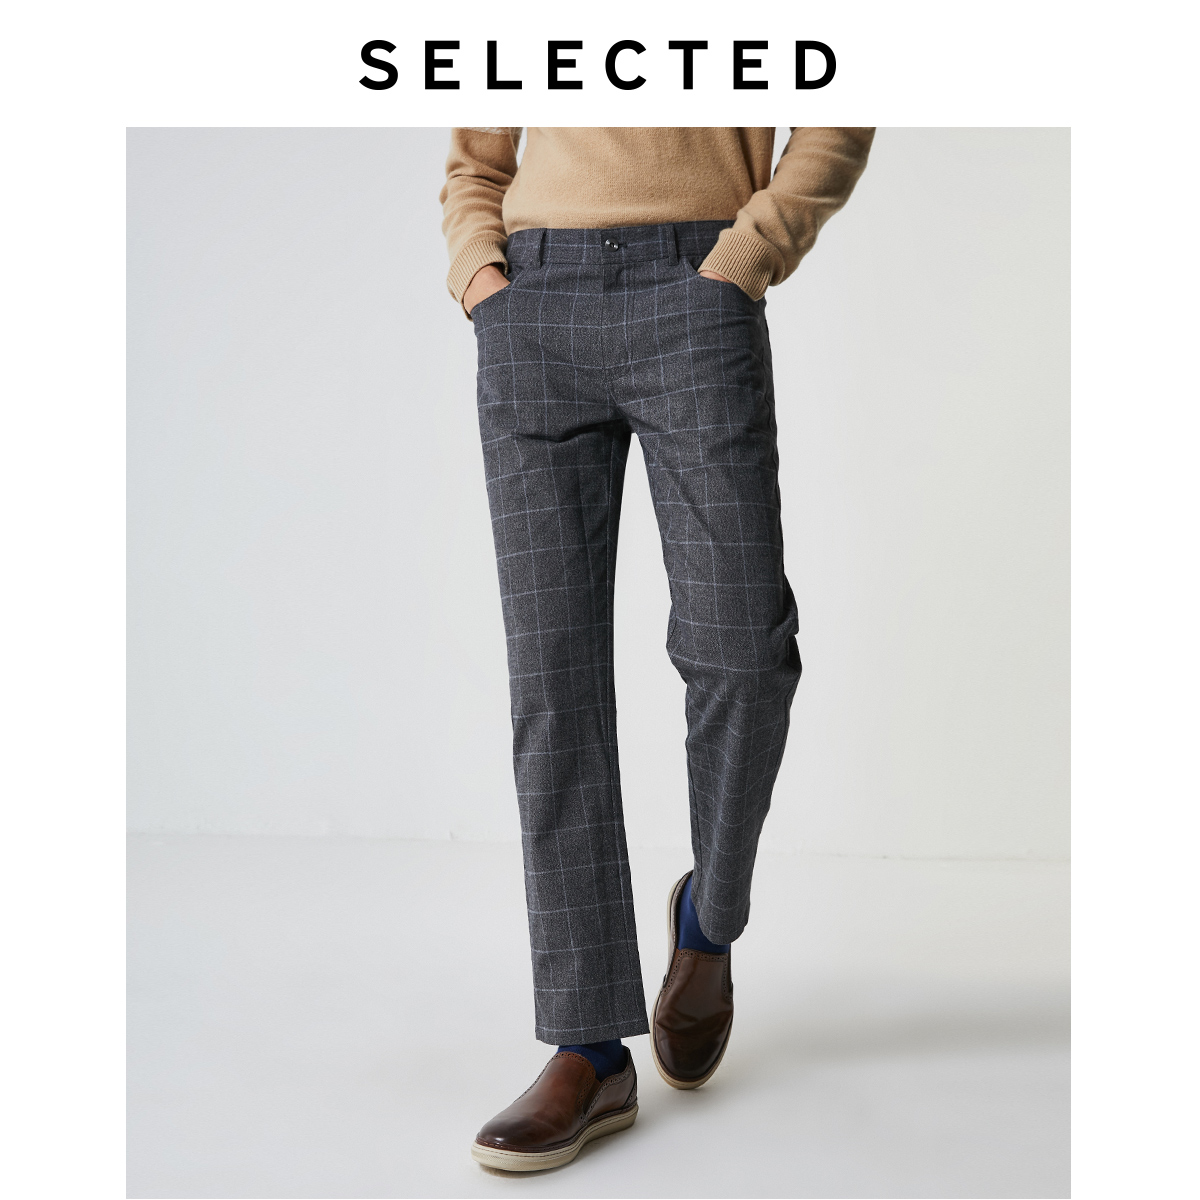 SELECTED Men's Slim Fit Slight Stretch Checked Pants S|419414528